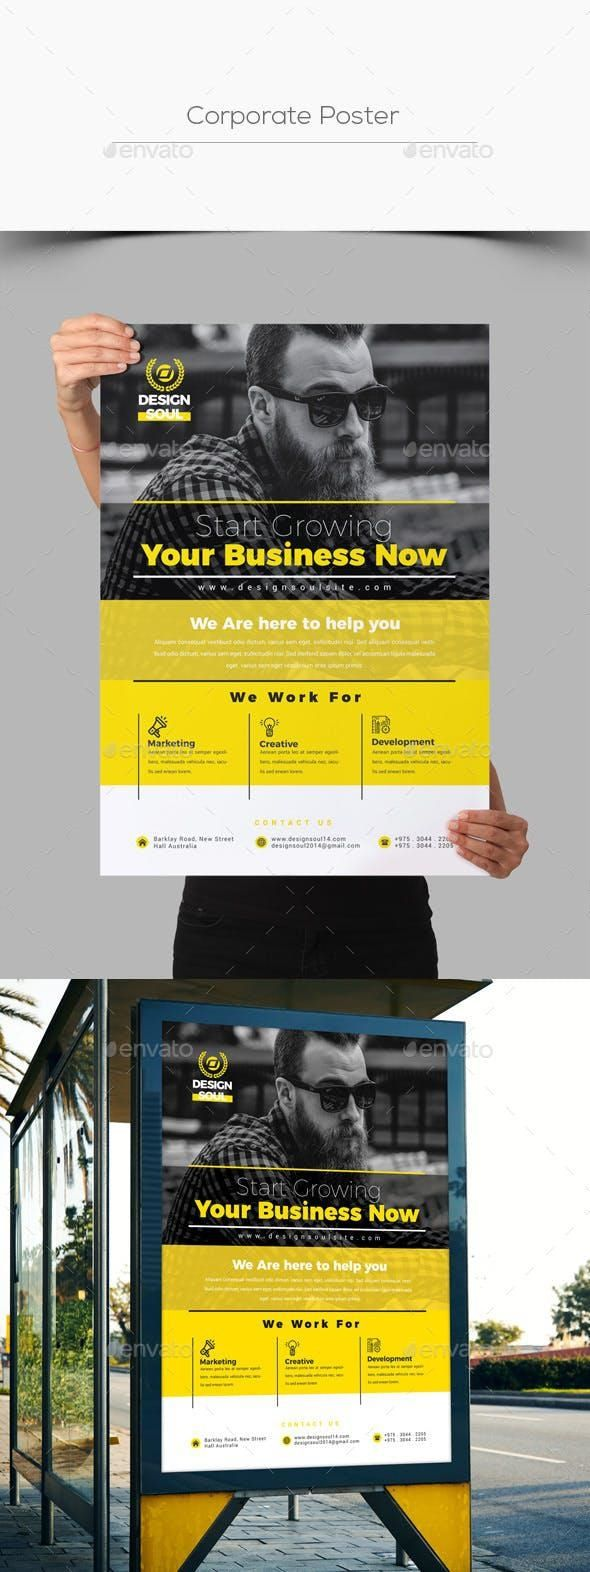 Corporate Poster #set #collection #ad #templates #PrintDesign